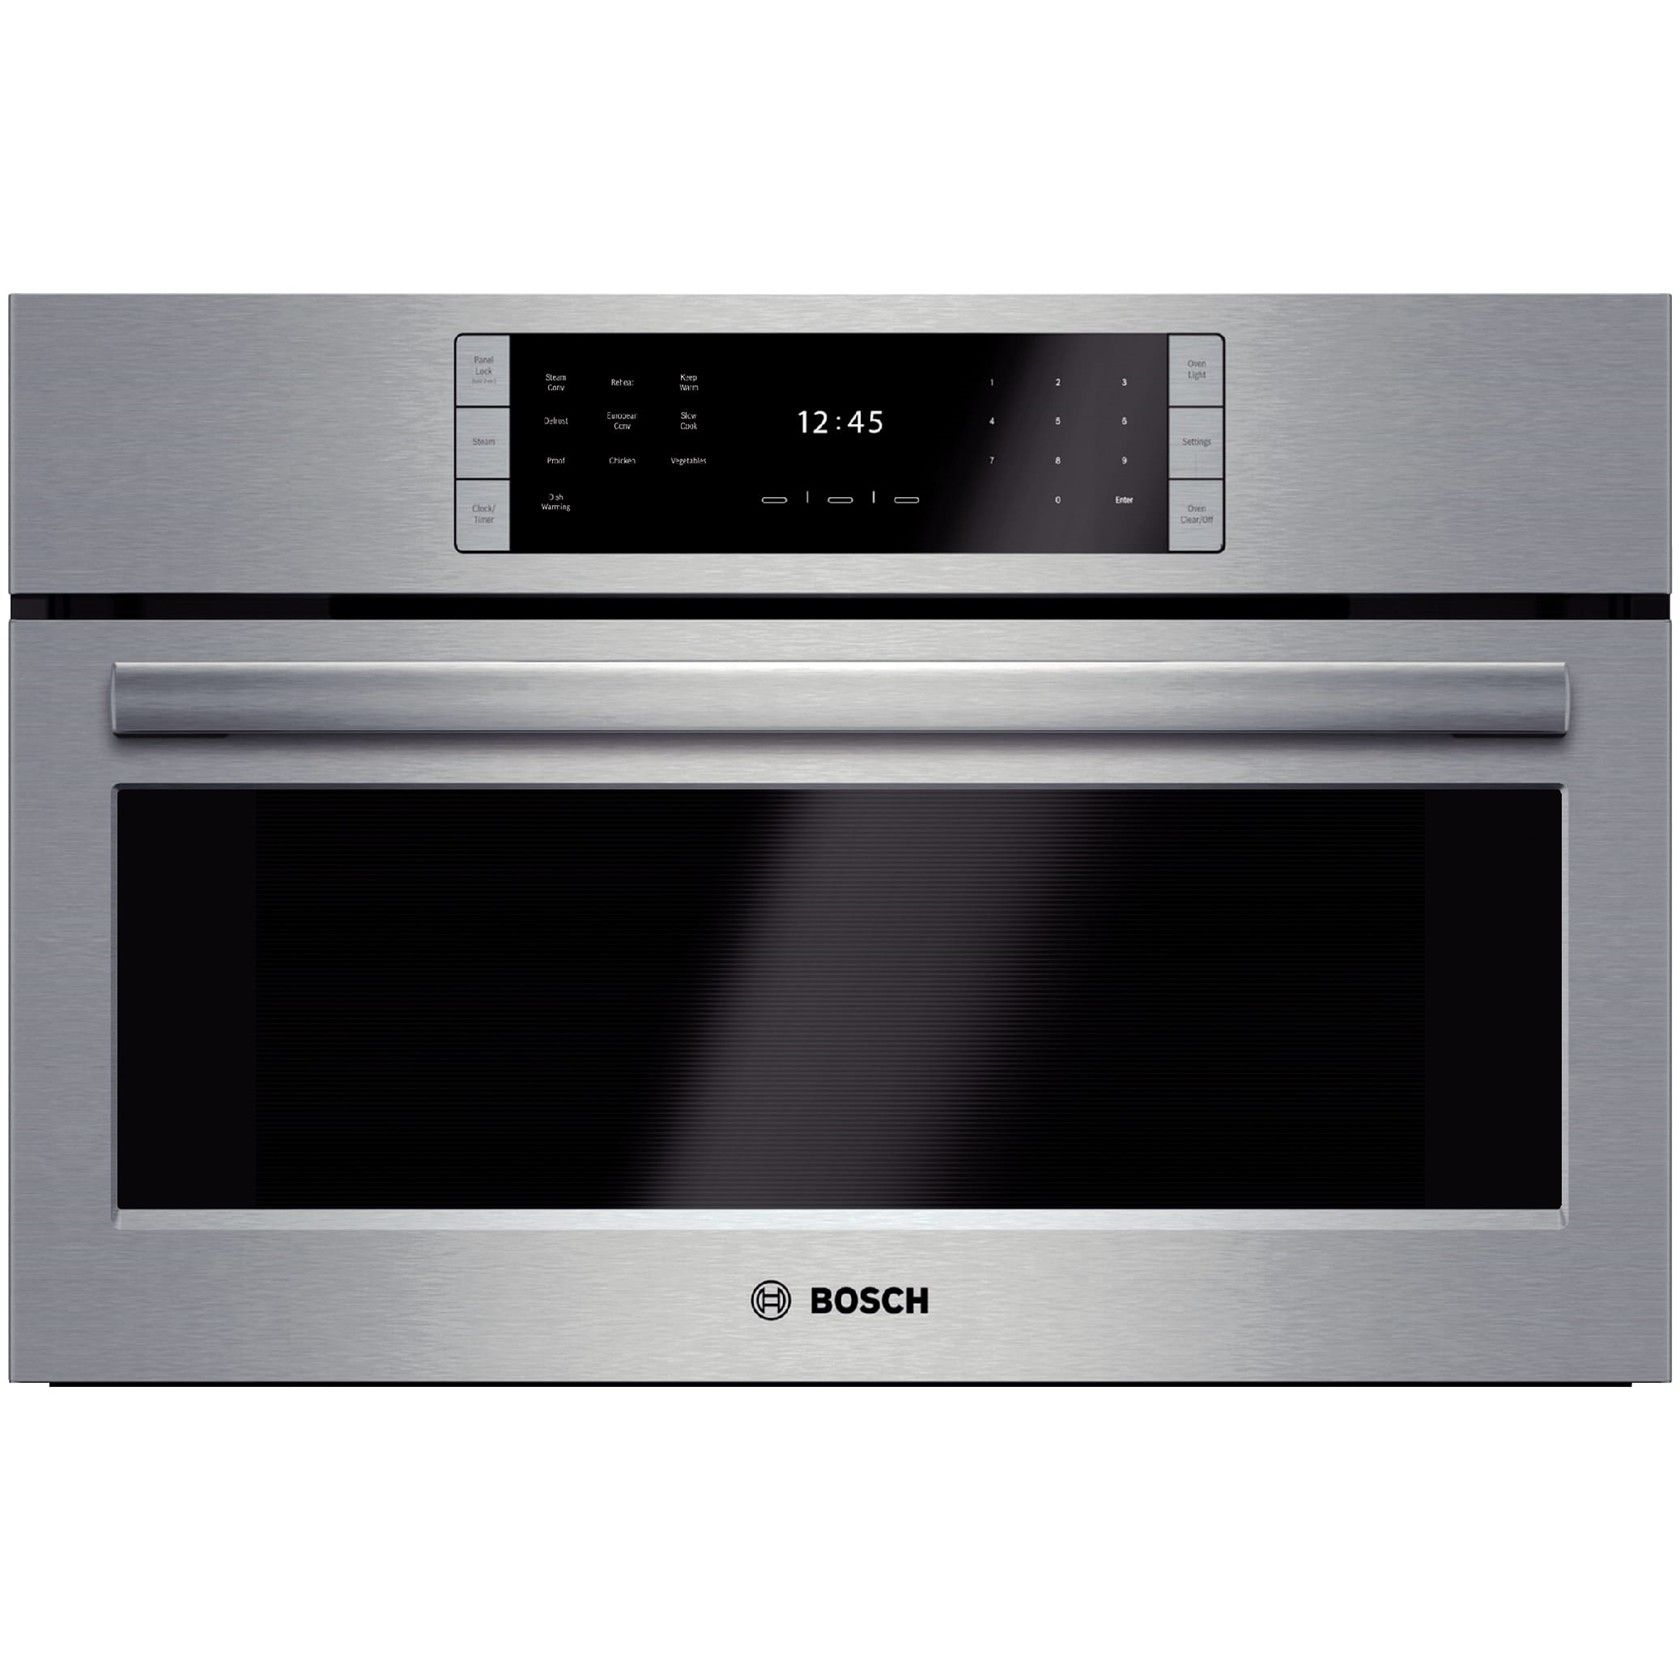 Ovens Detail Sheet With Images Stainless Steel Oven Built In Microwave Oven Built In Microwave